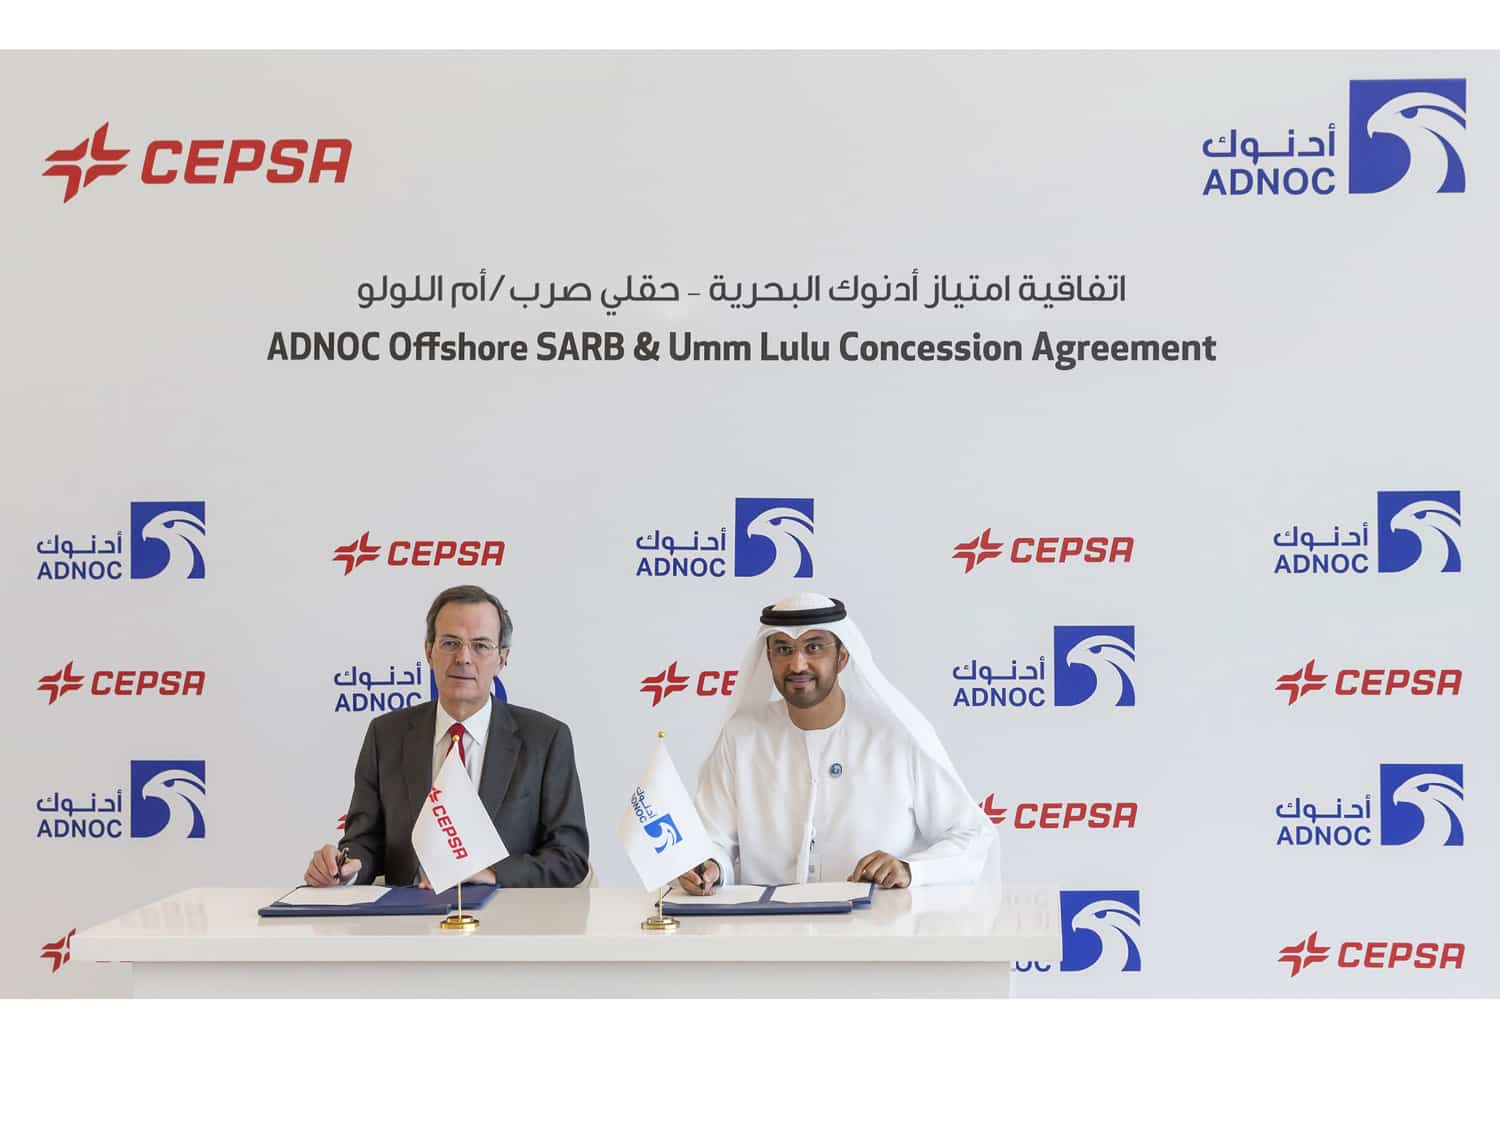 ADNOC Signs New Offshore Concession Agreement with Cepsa